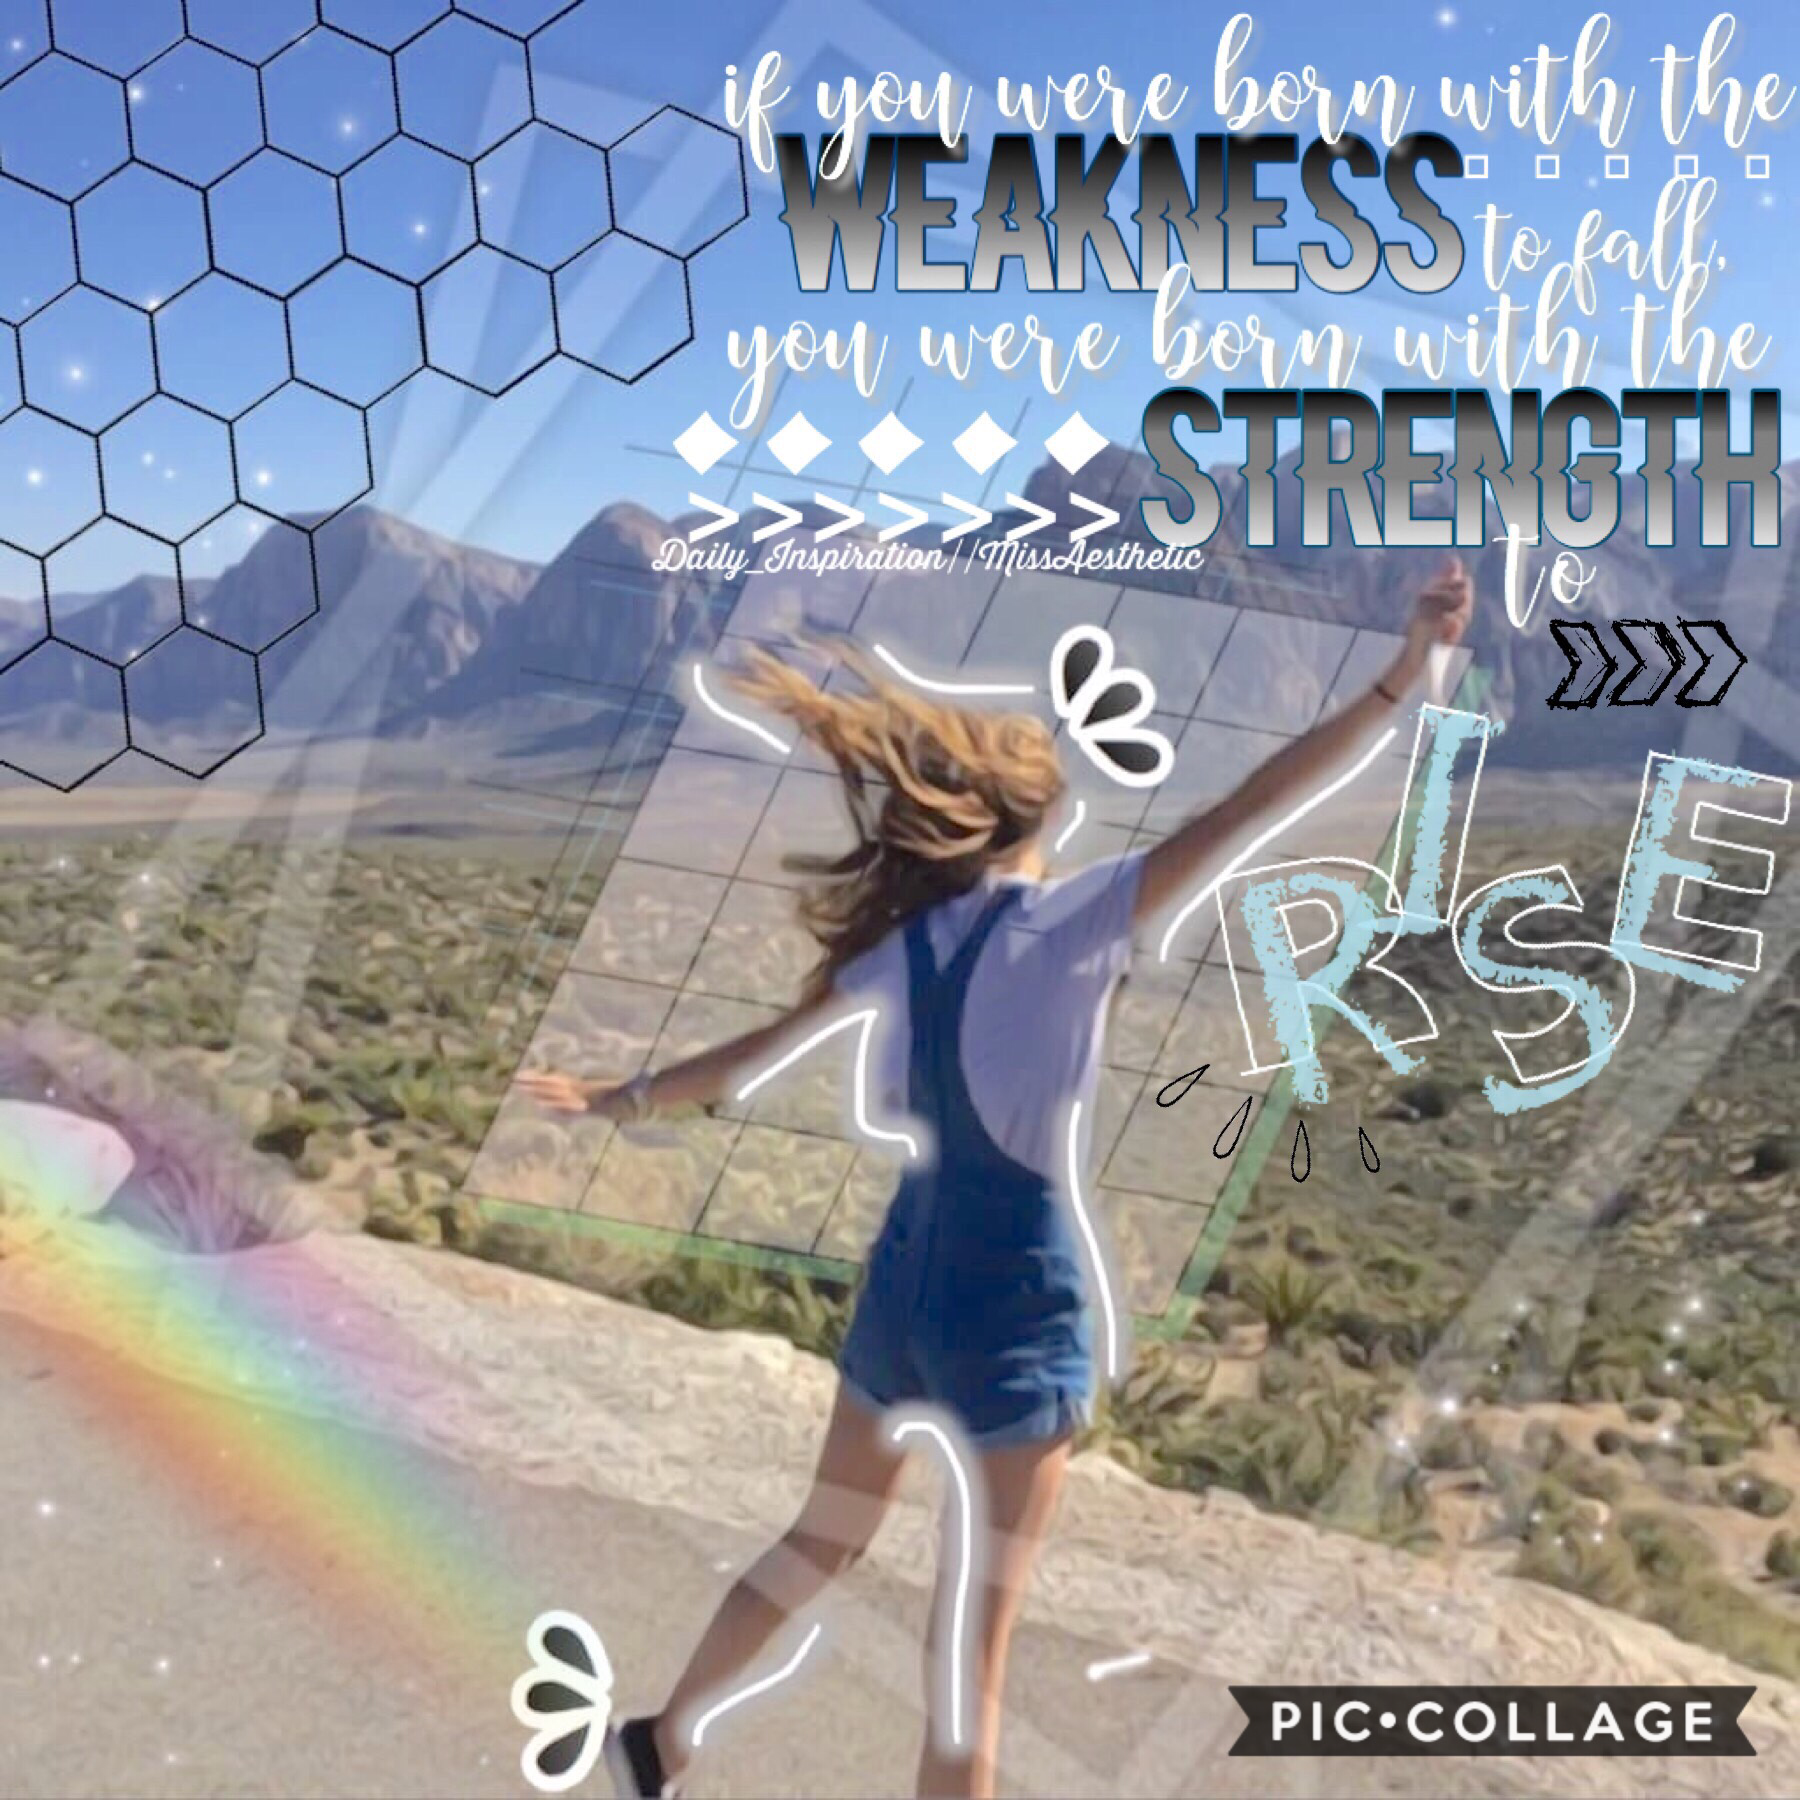 ✨tap✨ Here's the inspiration of the day! This quote is so powerful! You always have the strength to rise!💗😊 This was a collab with MissAesthetic; she is sooo talented! Go check out her awesome collages! QOTD:🍉or 🍓 AOTD: 🍓  8/22/2018